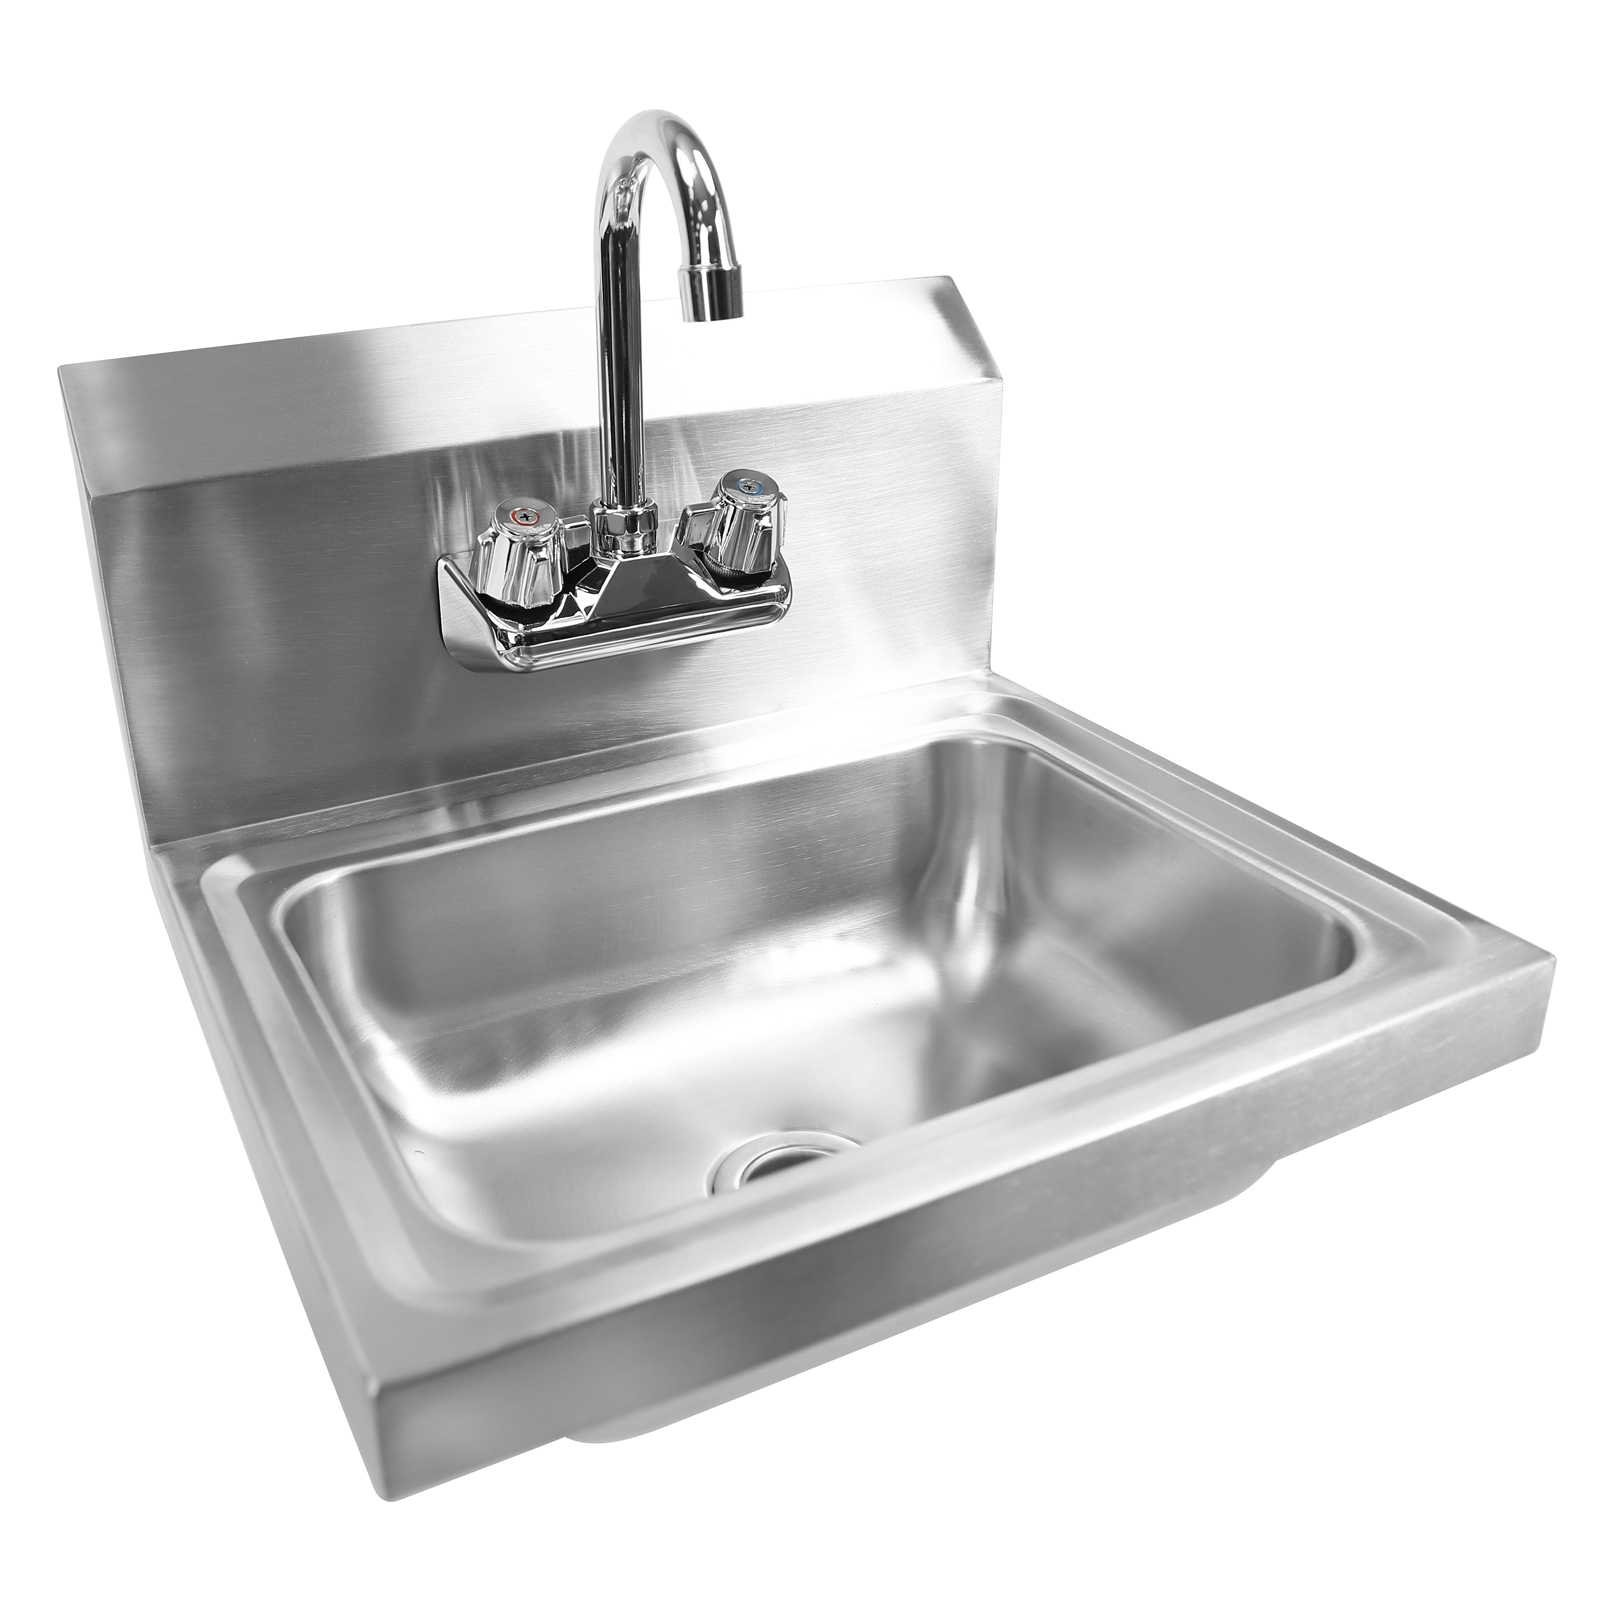 Gridmann Commercial NSF Stainless Steel Sink - Wall Mount Hand Washing Basin with Faucet by Gridmann